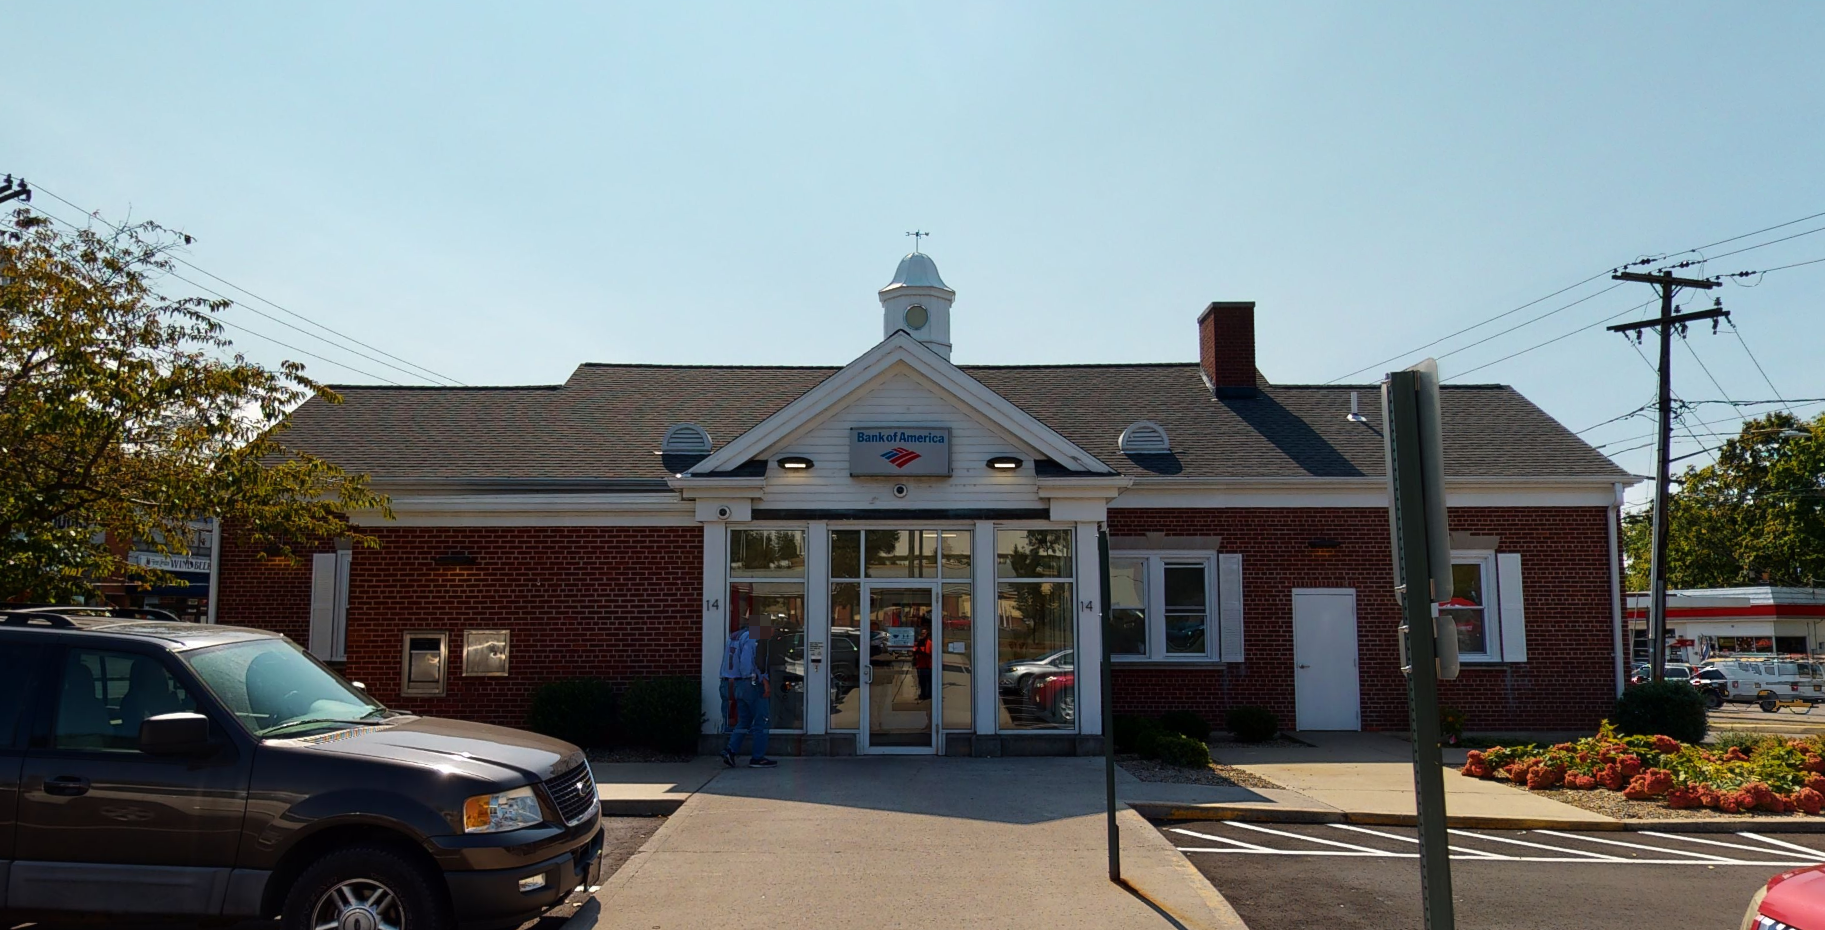 Bank of America financial center with drive-thru ATM | 14 High Ridge Rd, Stamford, CT 06905